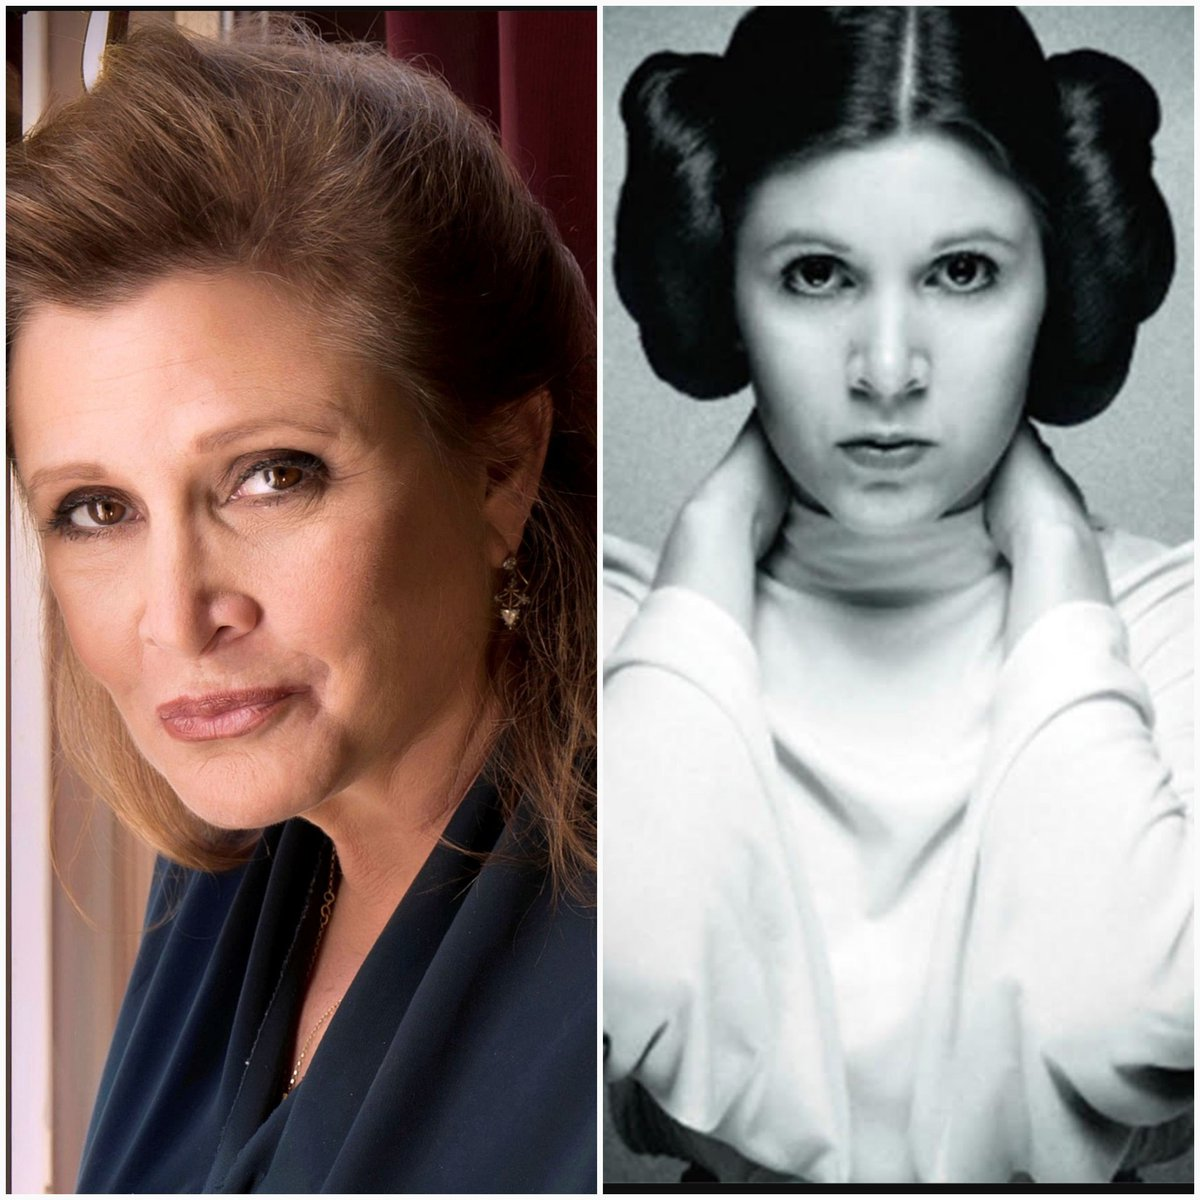 Born this day. We miss you. #CarrieFisher #princessleia #StarWars<br>http://pic.twitter.com/4v29pUVuvH